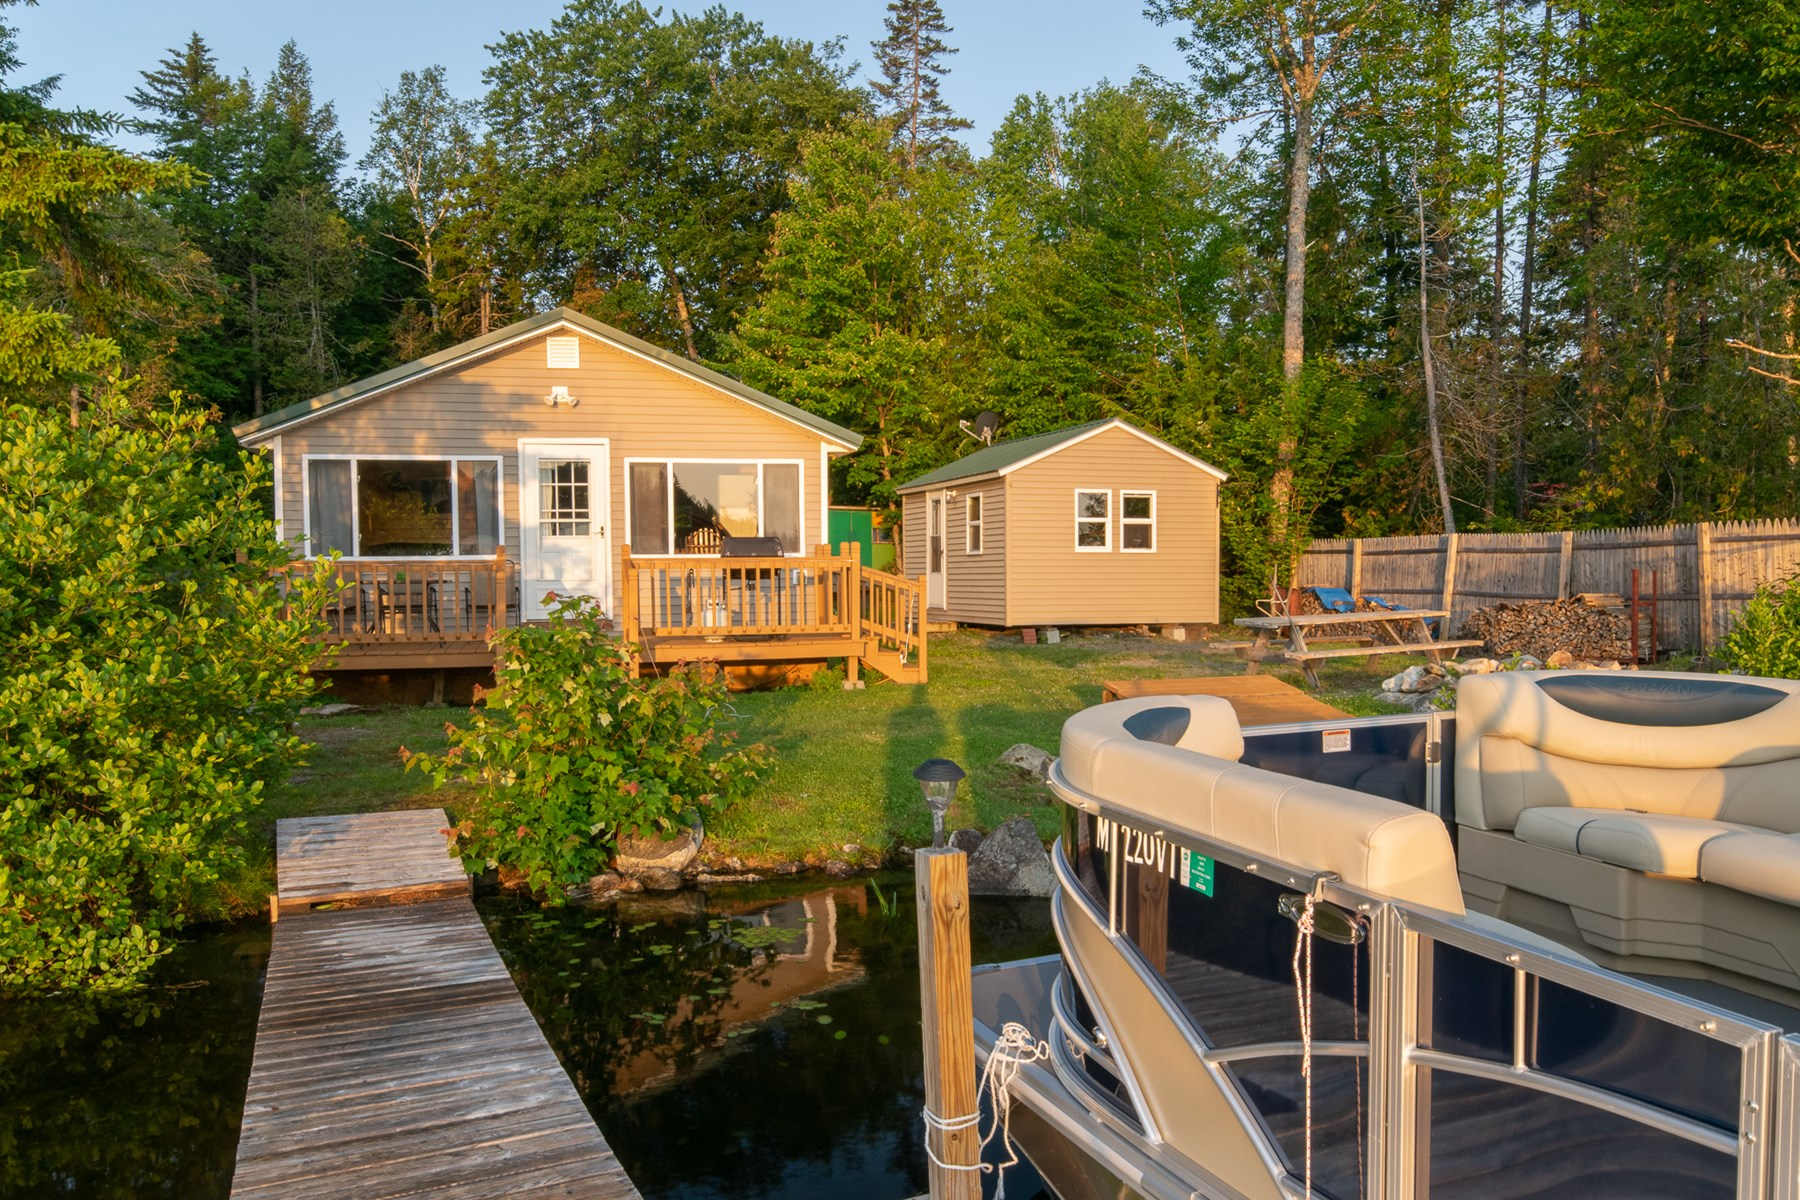 Lakefront Cottage For Sale in Lincoln, Maine